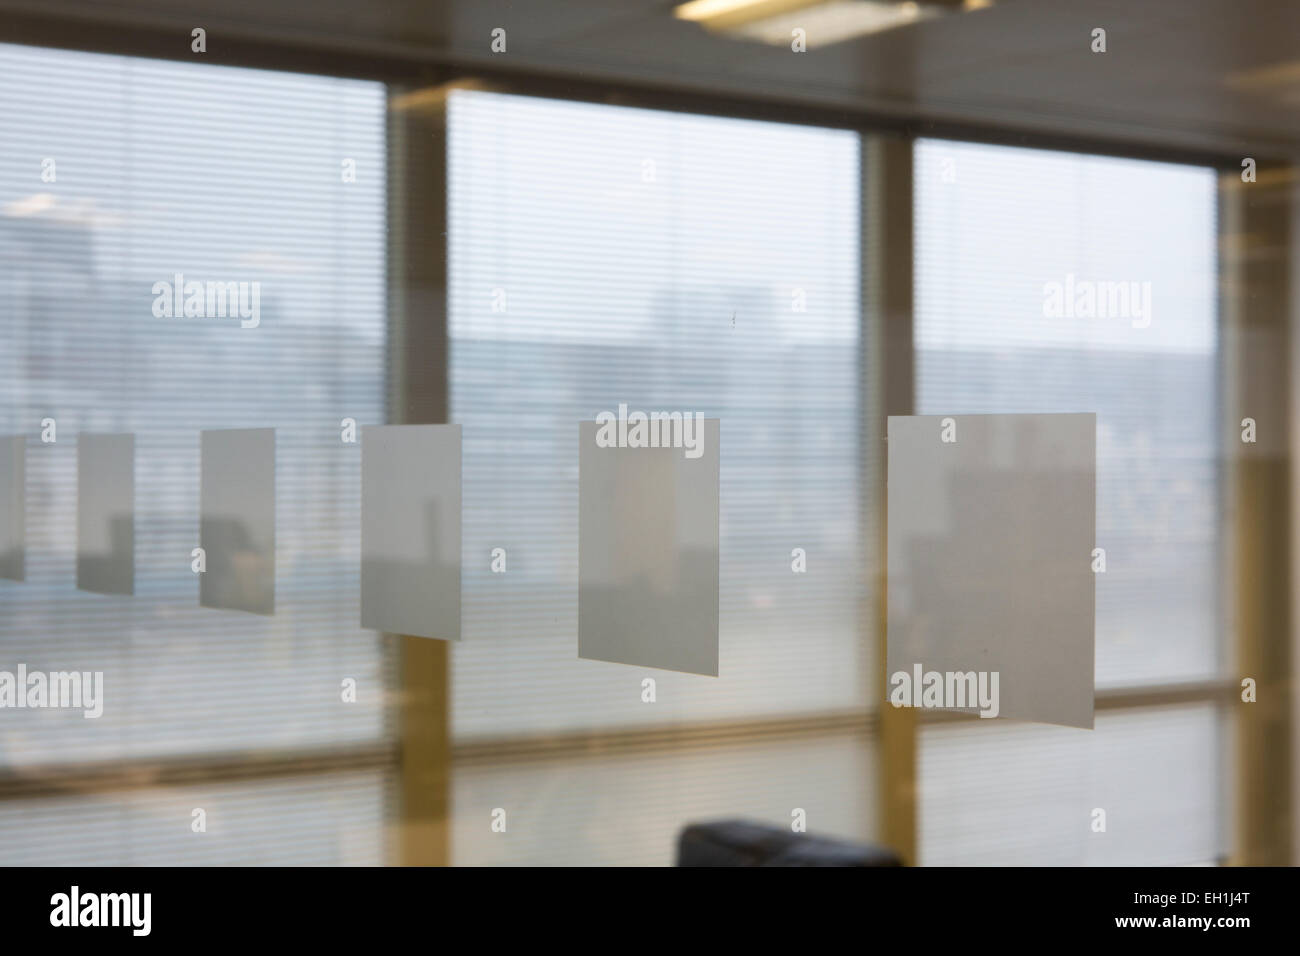 Glass wall on a Mmodern office interior with open plan desking - Stock Image